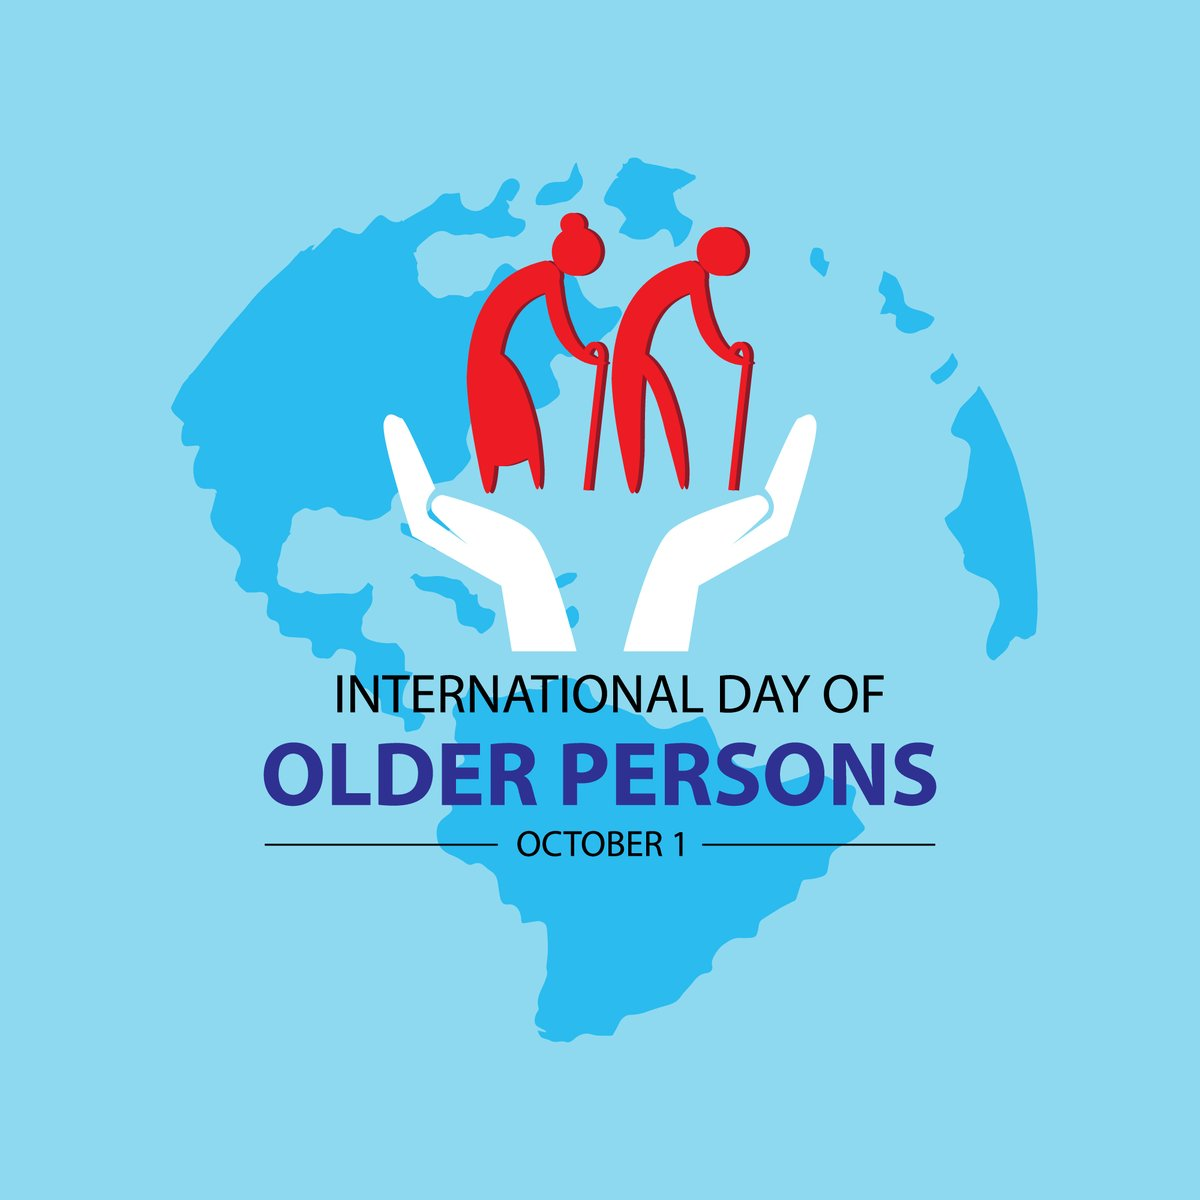 UNRCCA International Day of Older Persons